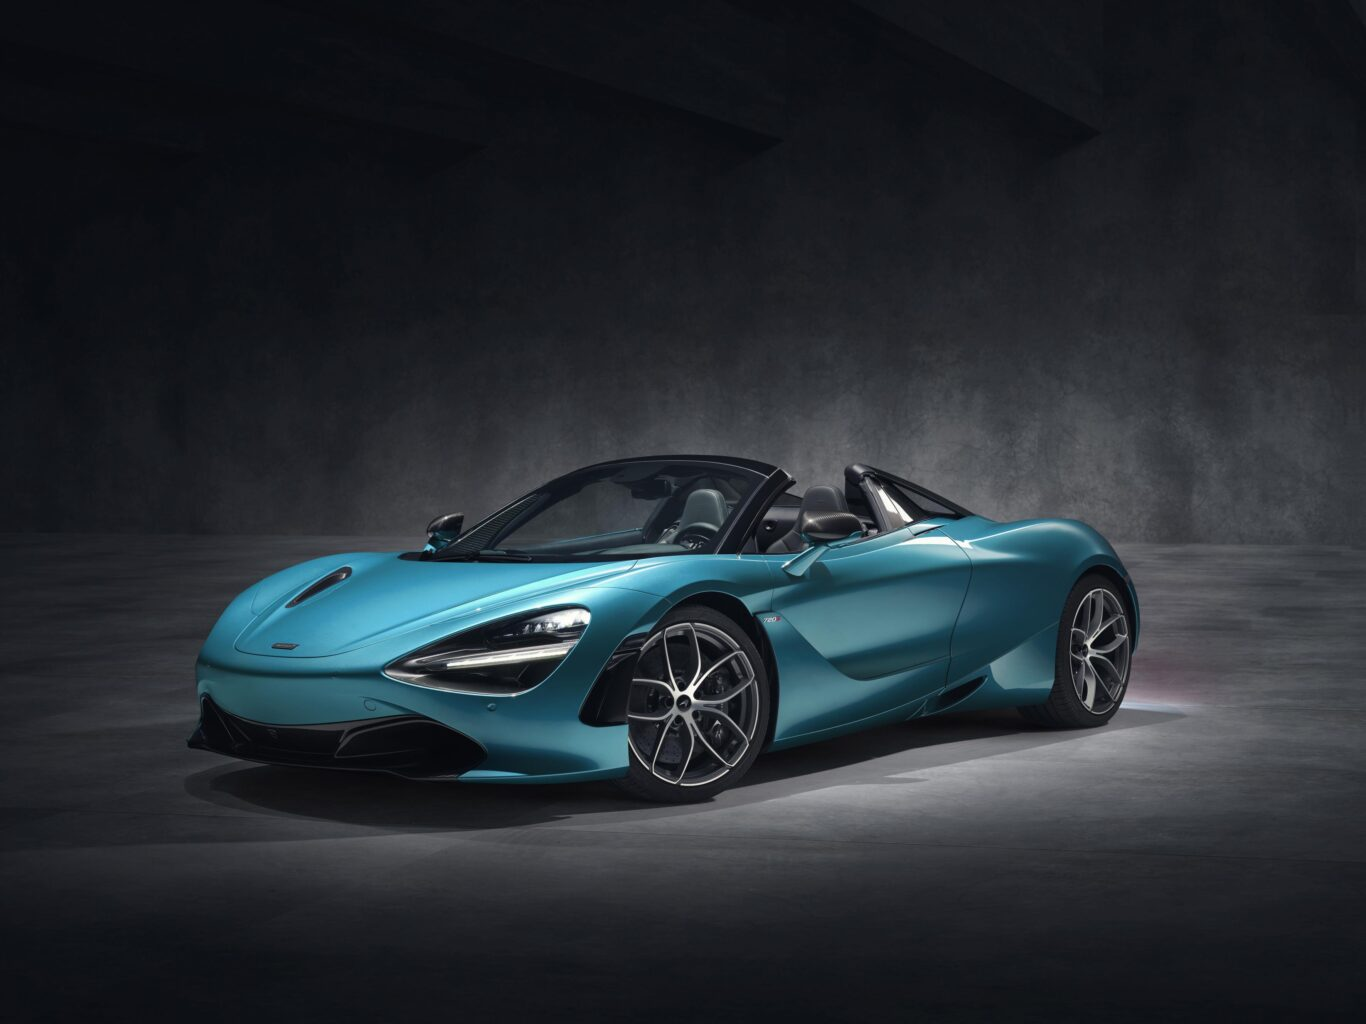 The 720s Spider is enormously powerful